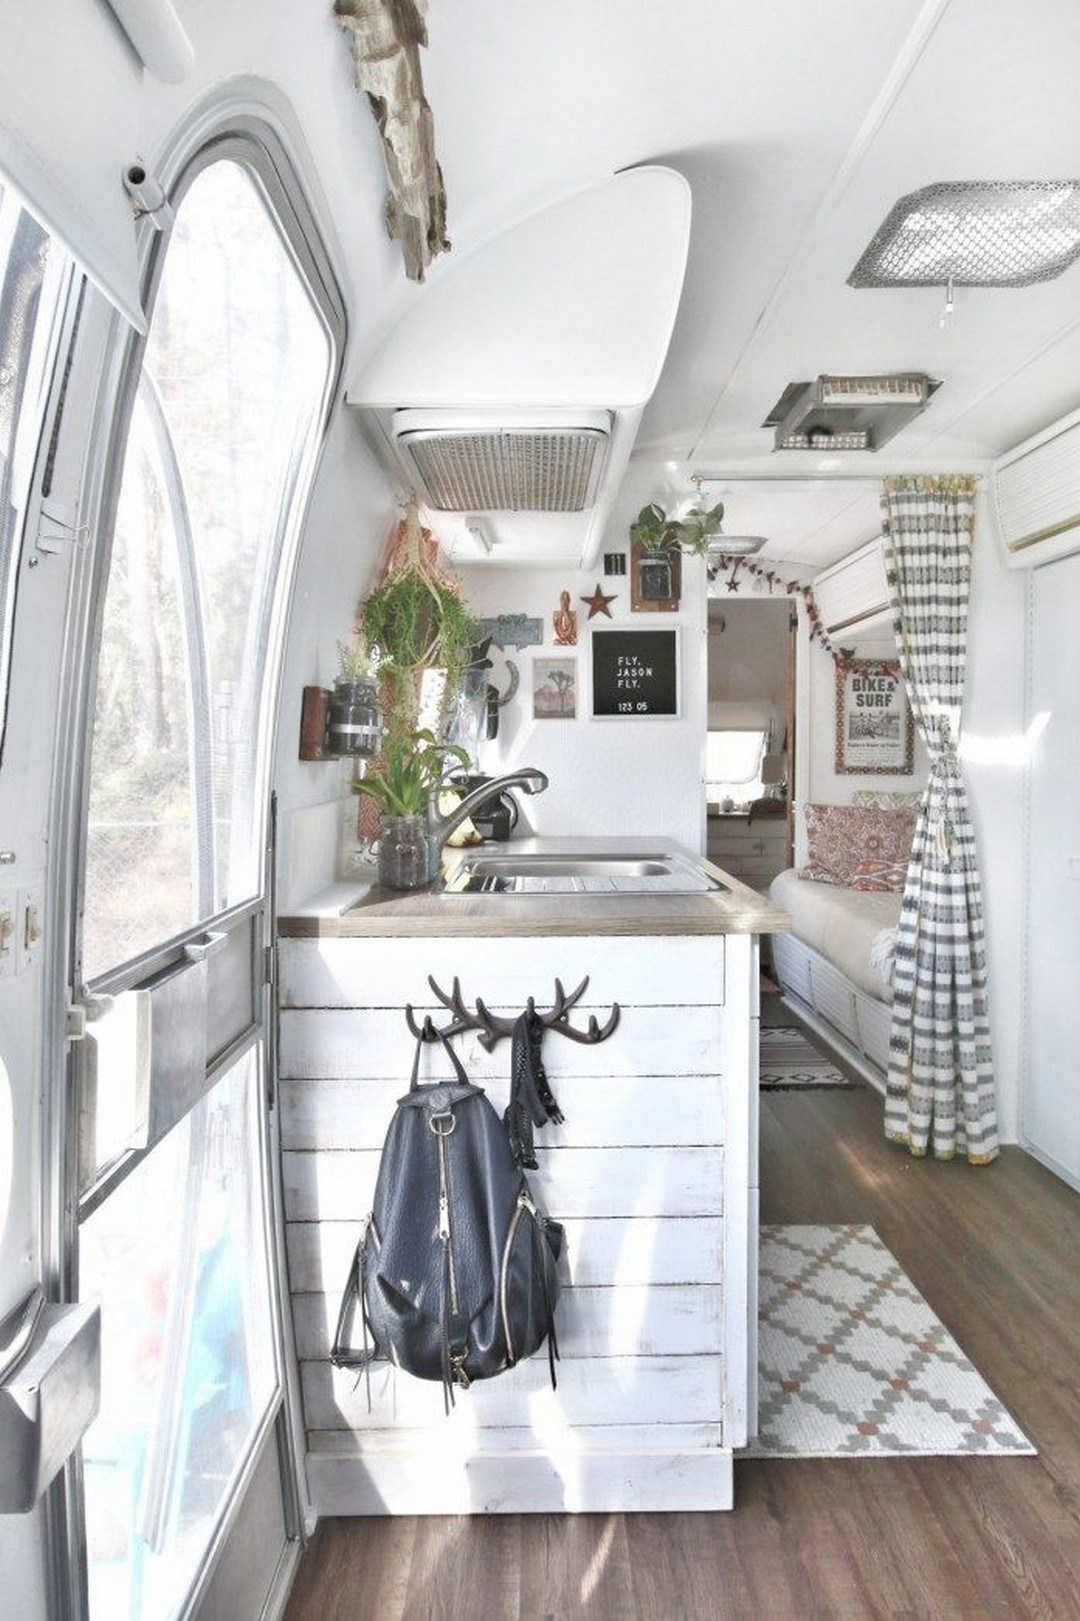 Kitchen Room Interior Design: 35 Stylish And Gorgeous Airstream Interior Design Ideas